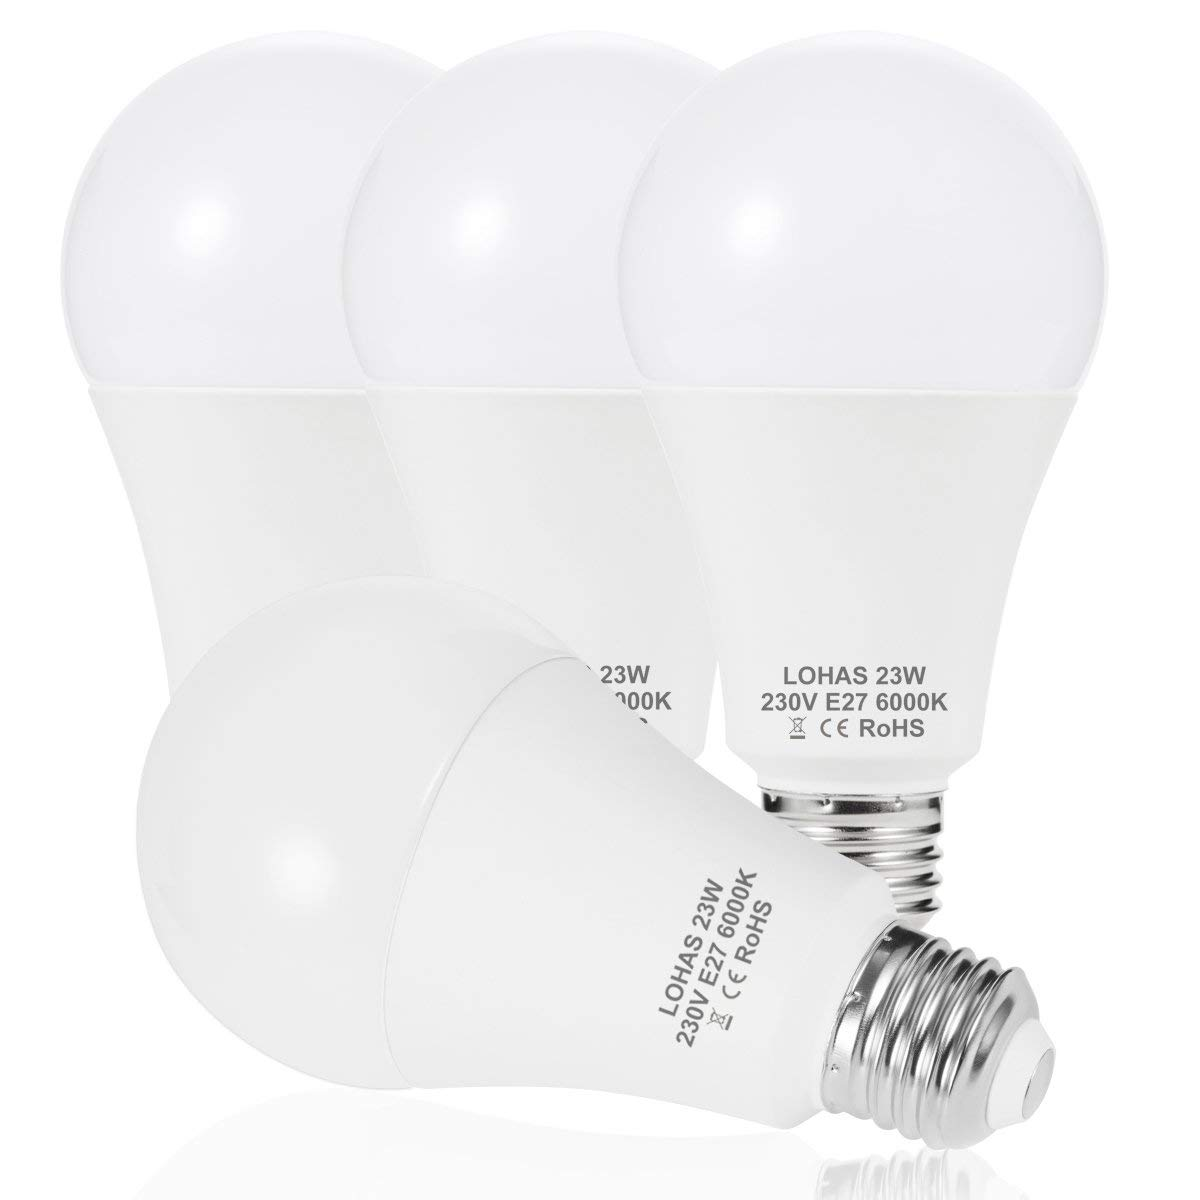 Clear Finish 3 Pack of 105W Philips A55 Eco Classic Energy Saving Light Bulb High Quality Halogen Light E27 Screw in Fitting